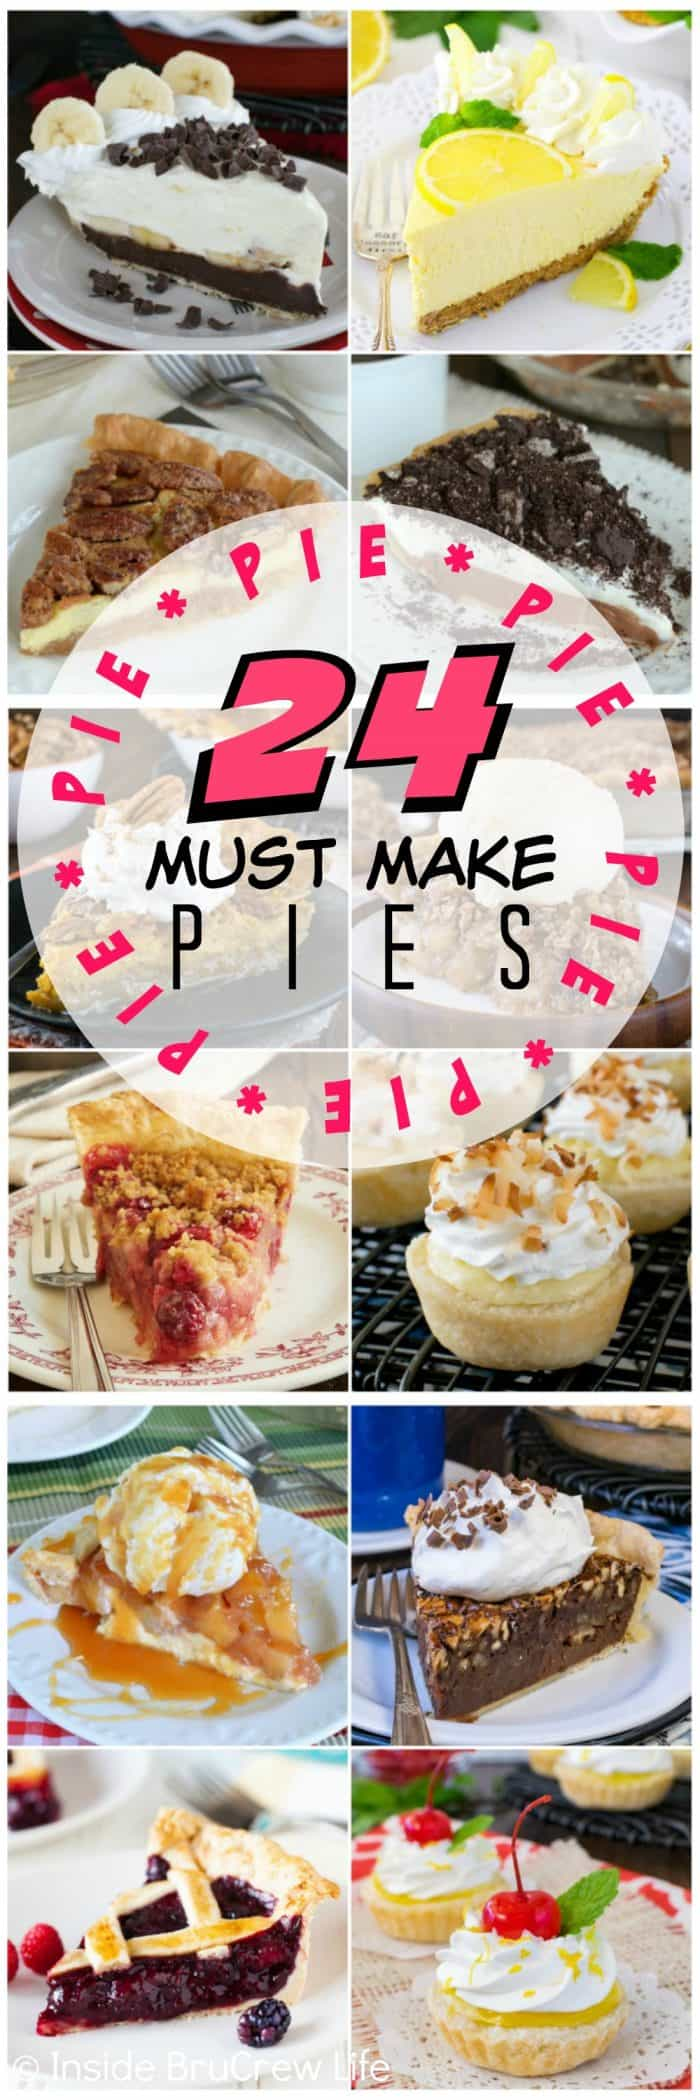 24 Must Make Pie Recipes - here are 24 of the best pies that would impress anyone at dinner. You will find fruit, cream, cheesecake, chocolate, and mini pie recipes that need to happen in your kitchen.